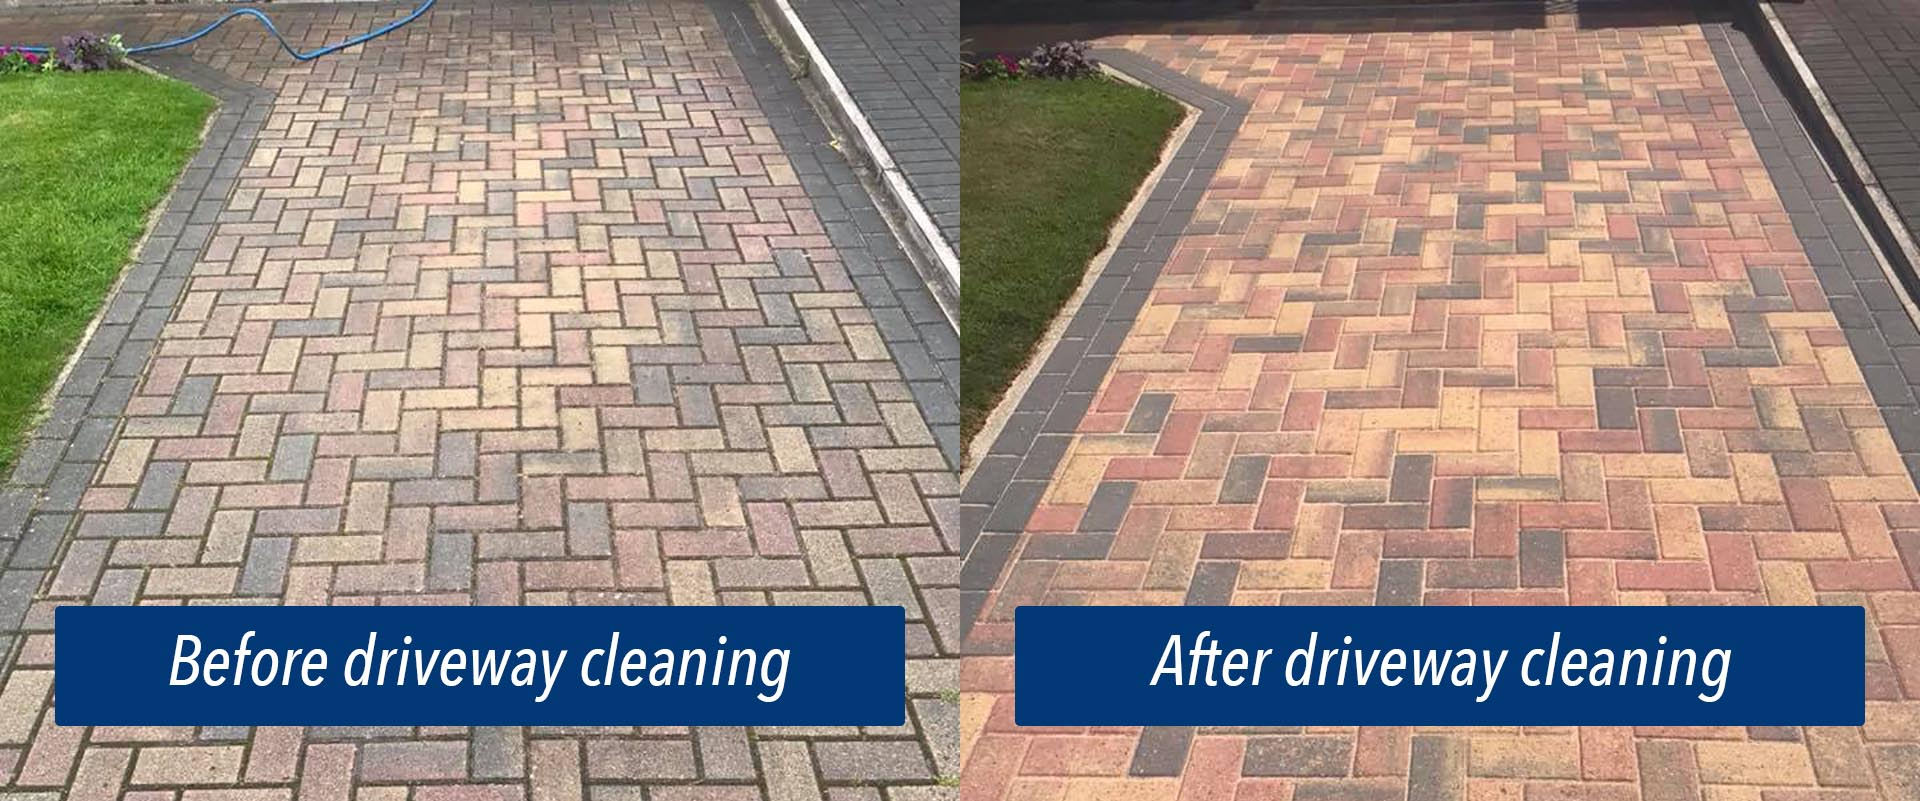 Driveway cleaning results